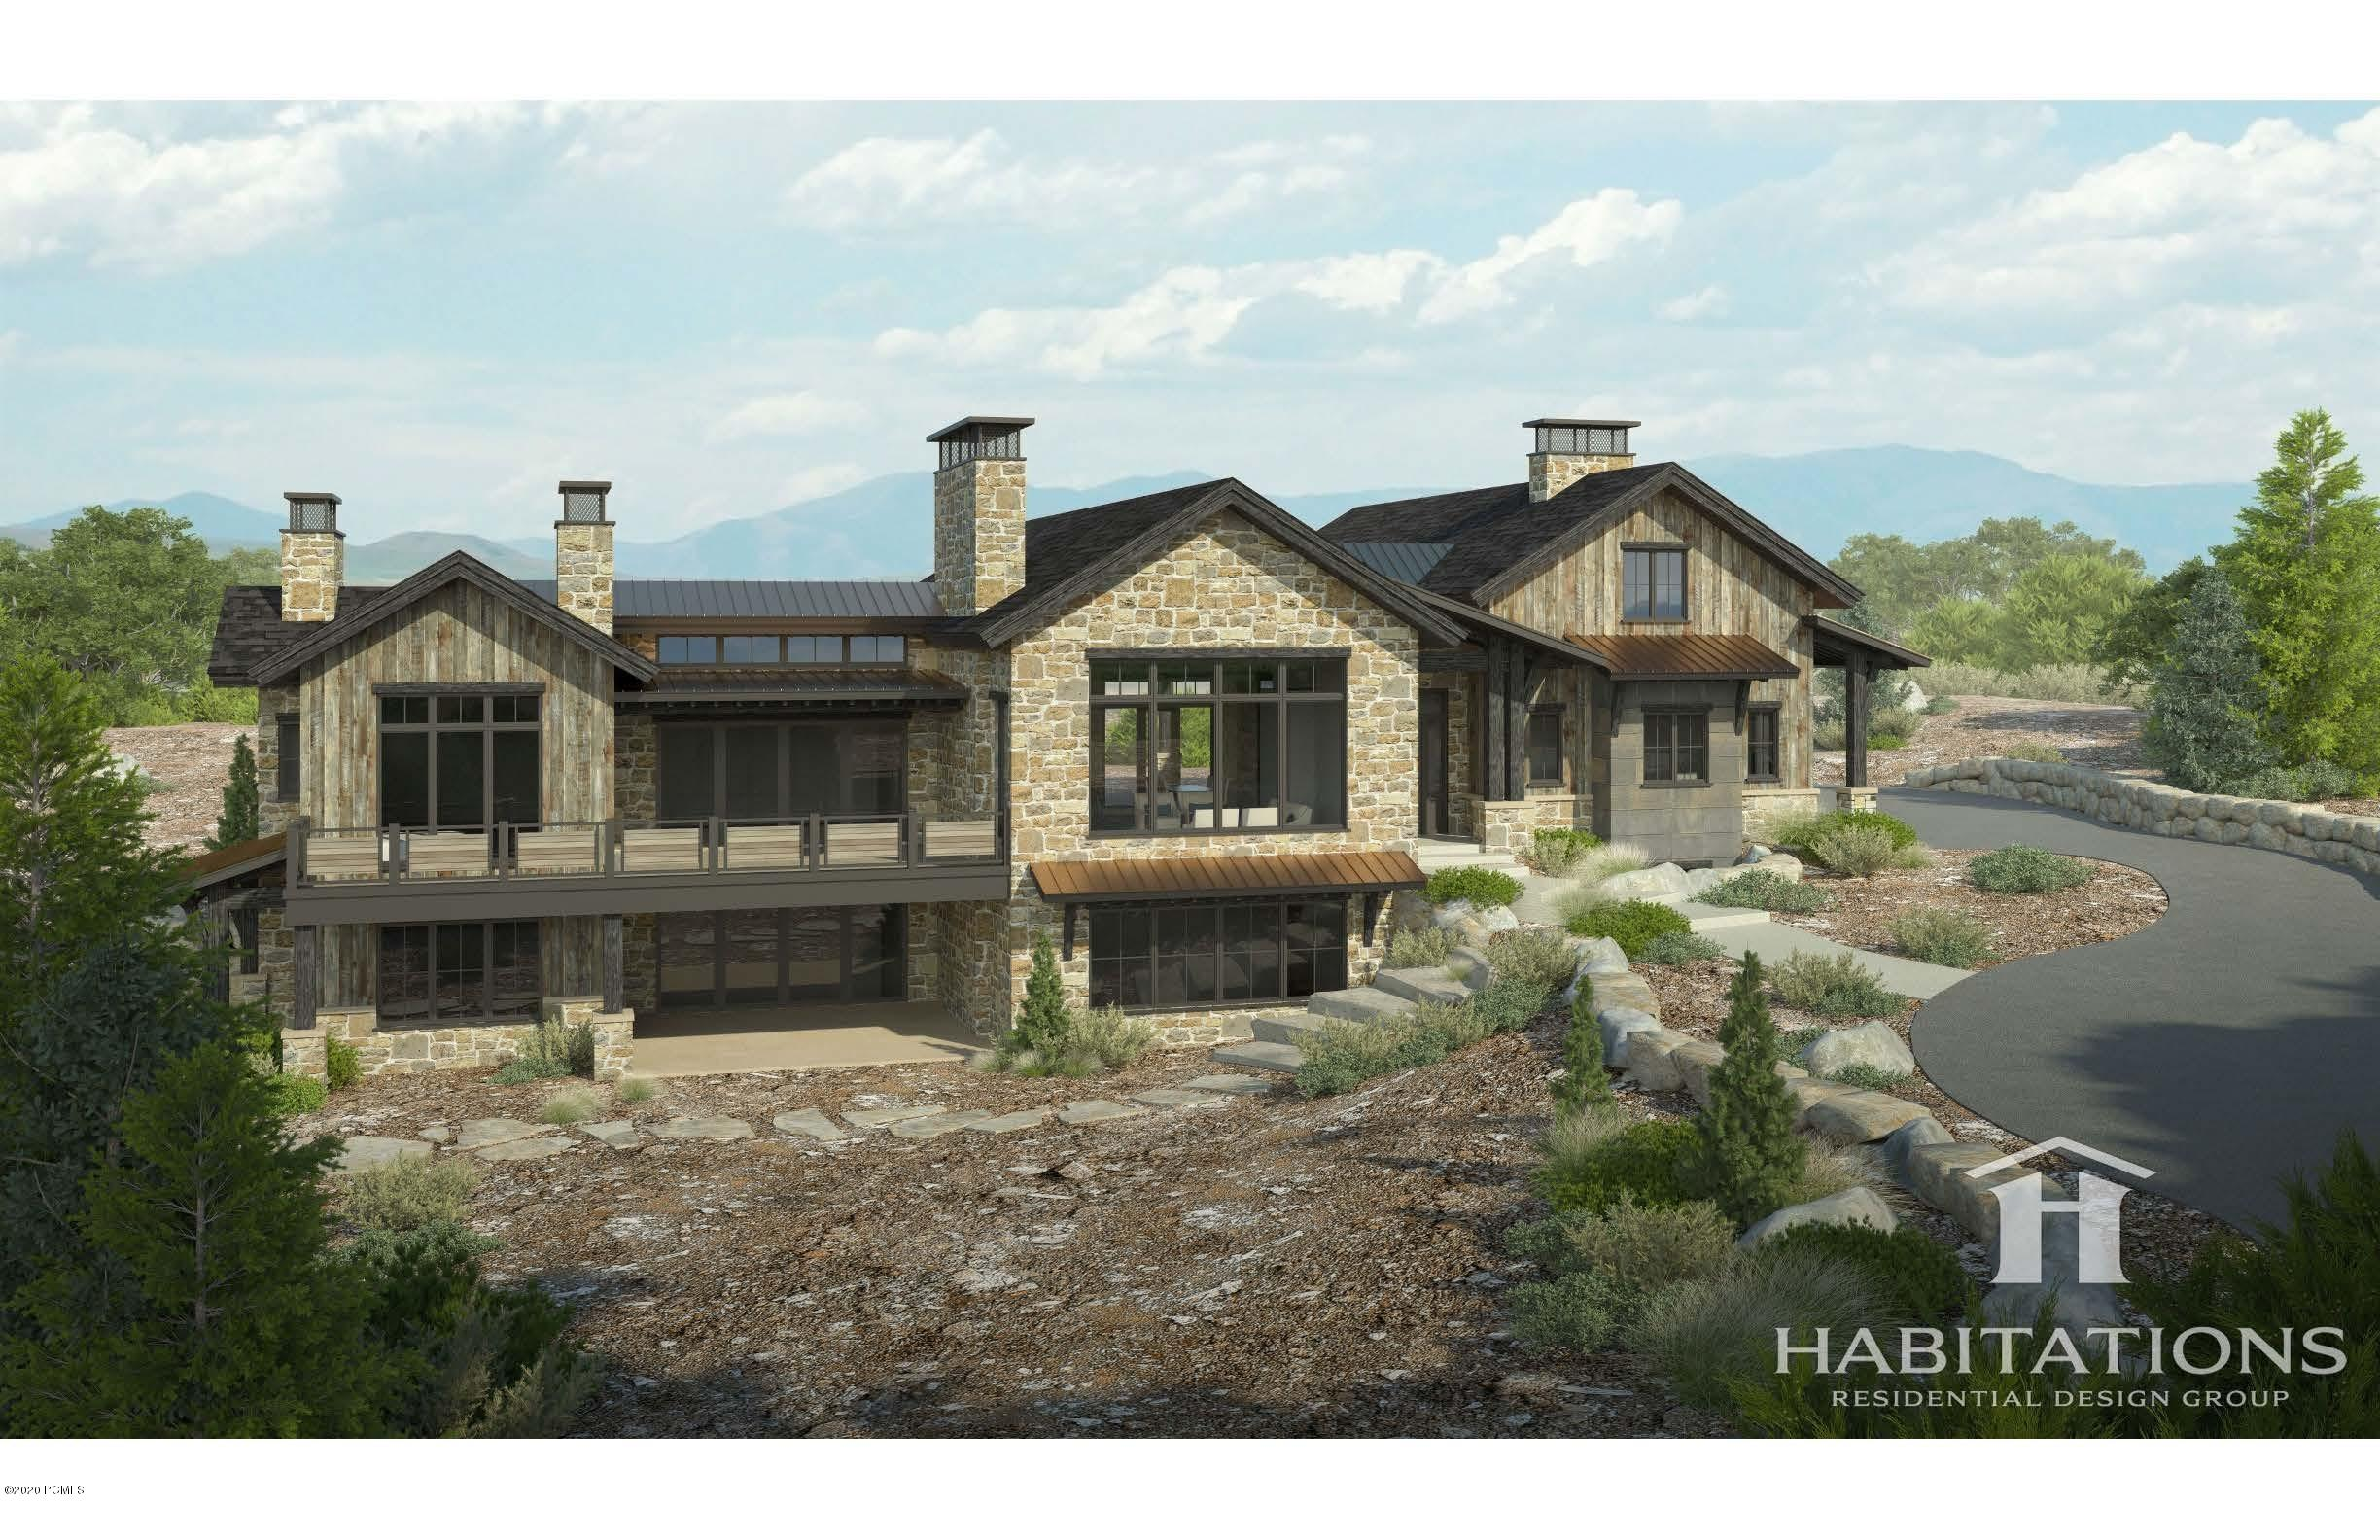 5847 Dakota Trail, Park City, Utah 84098, 6 Bedrooms Bedrooms, ,7 BathroomsBathrooms,Single Family,For Sale,Dakota,12003391